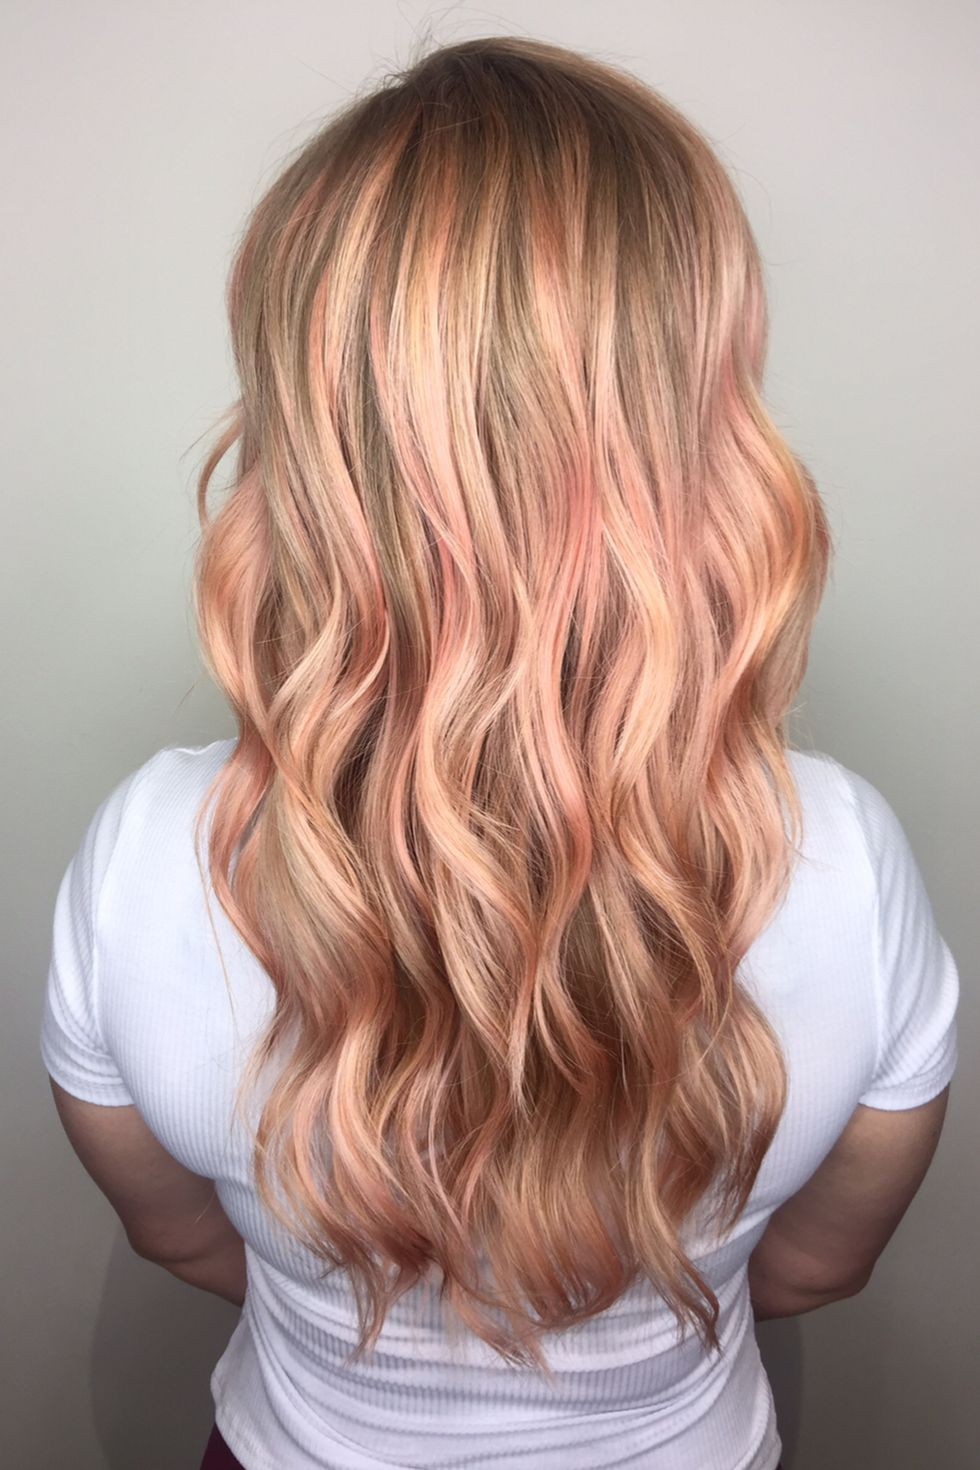 15 Ways To Add A Pretty Touch Of Color To Your Hair Subtle Hair